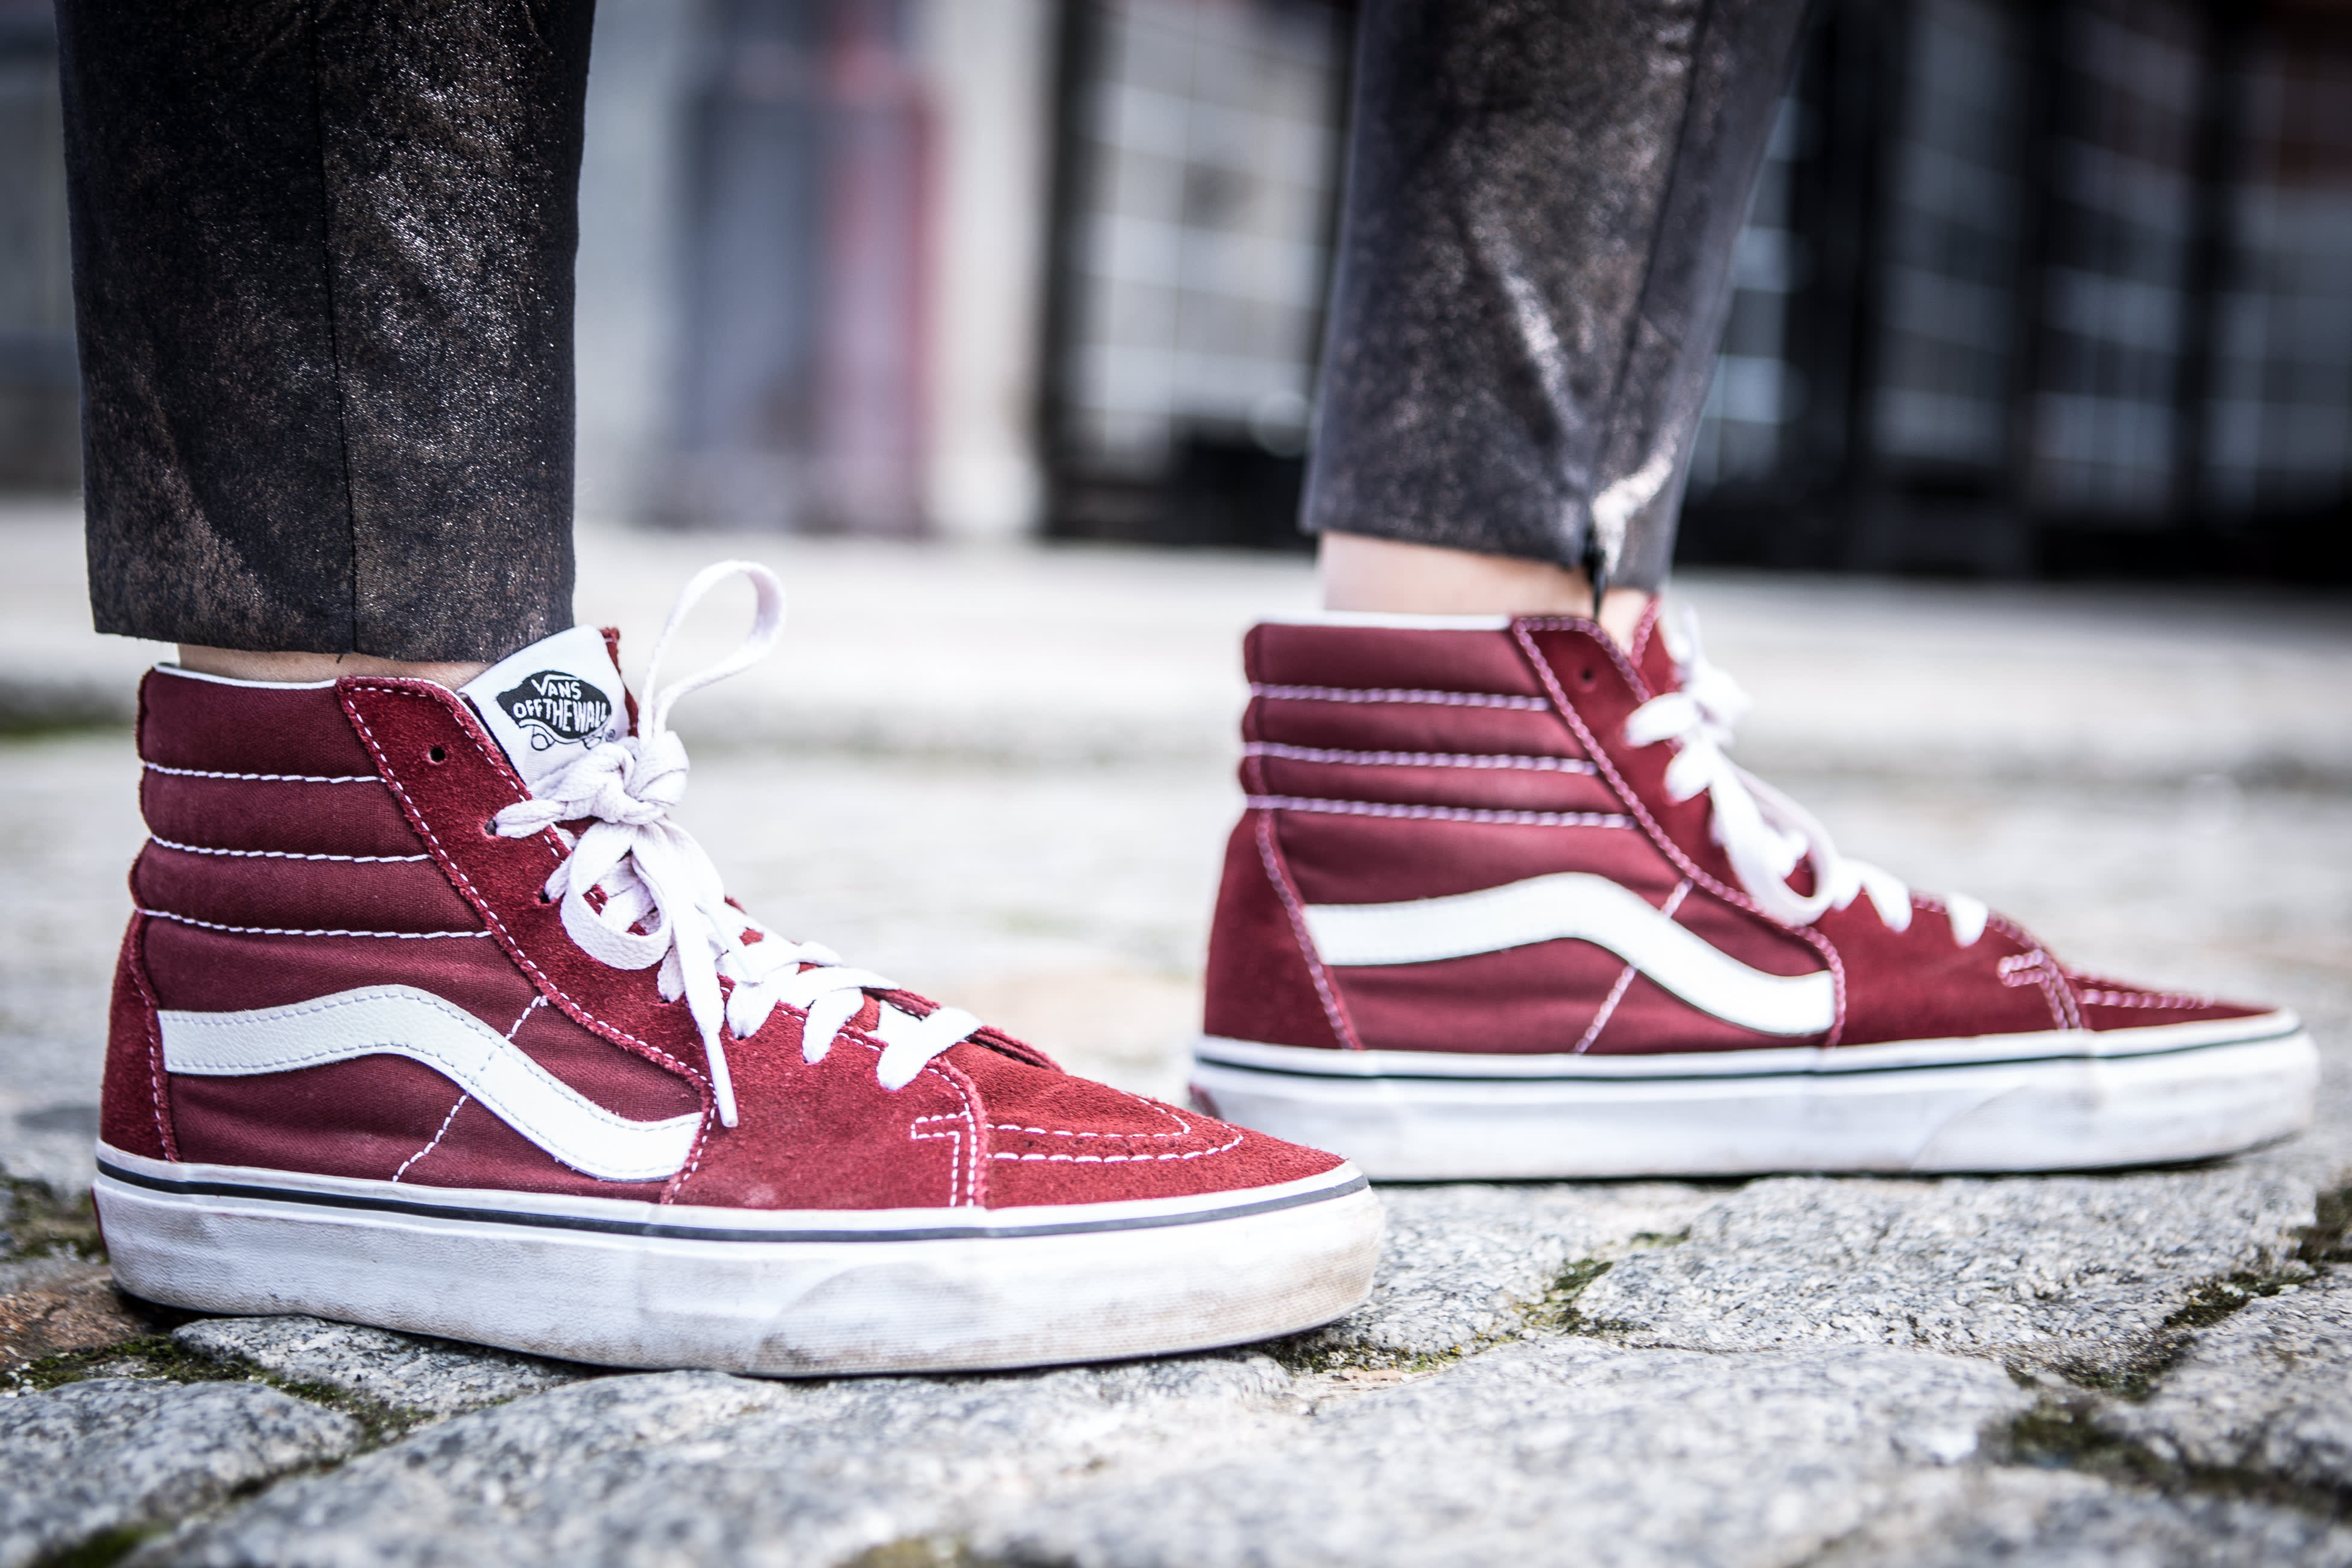 104e4adee07e Cramer  Vans could be the next major  lifestyle brand  after Nike